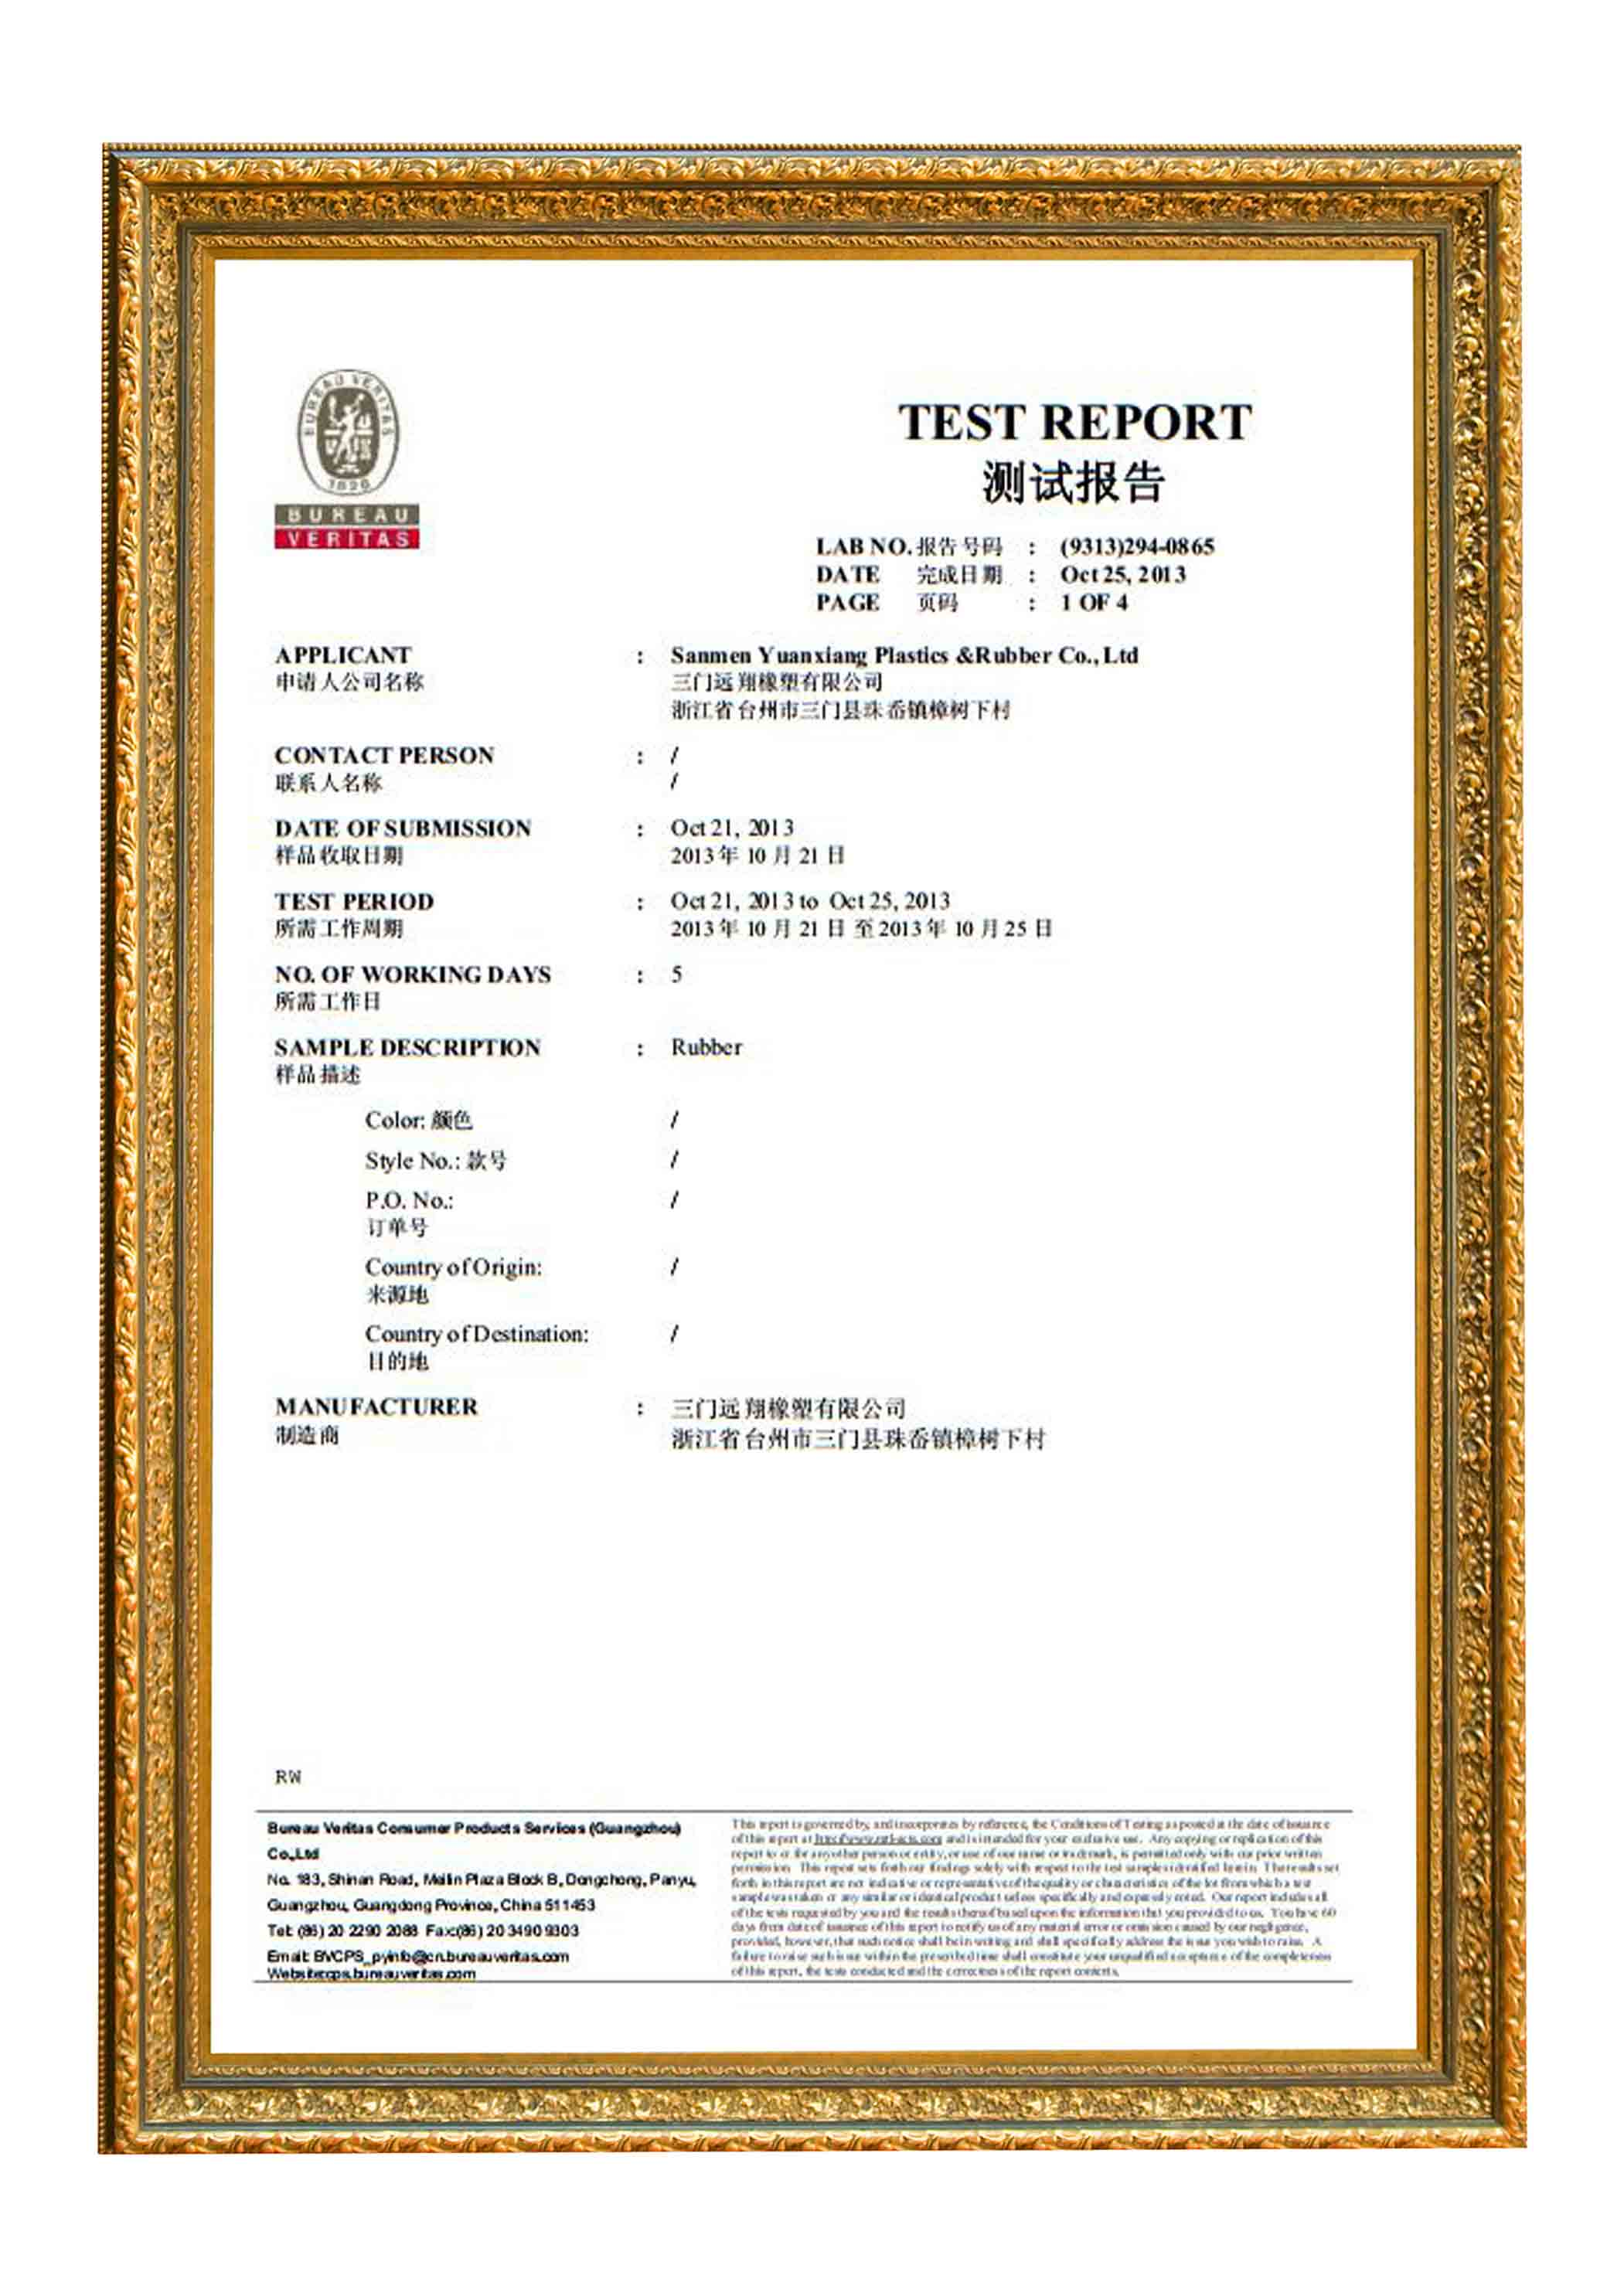 TEST REPORT by BV